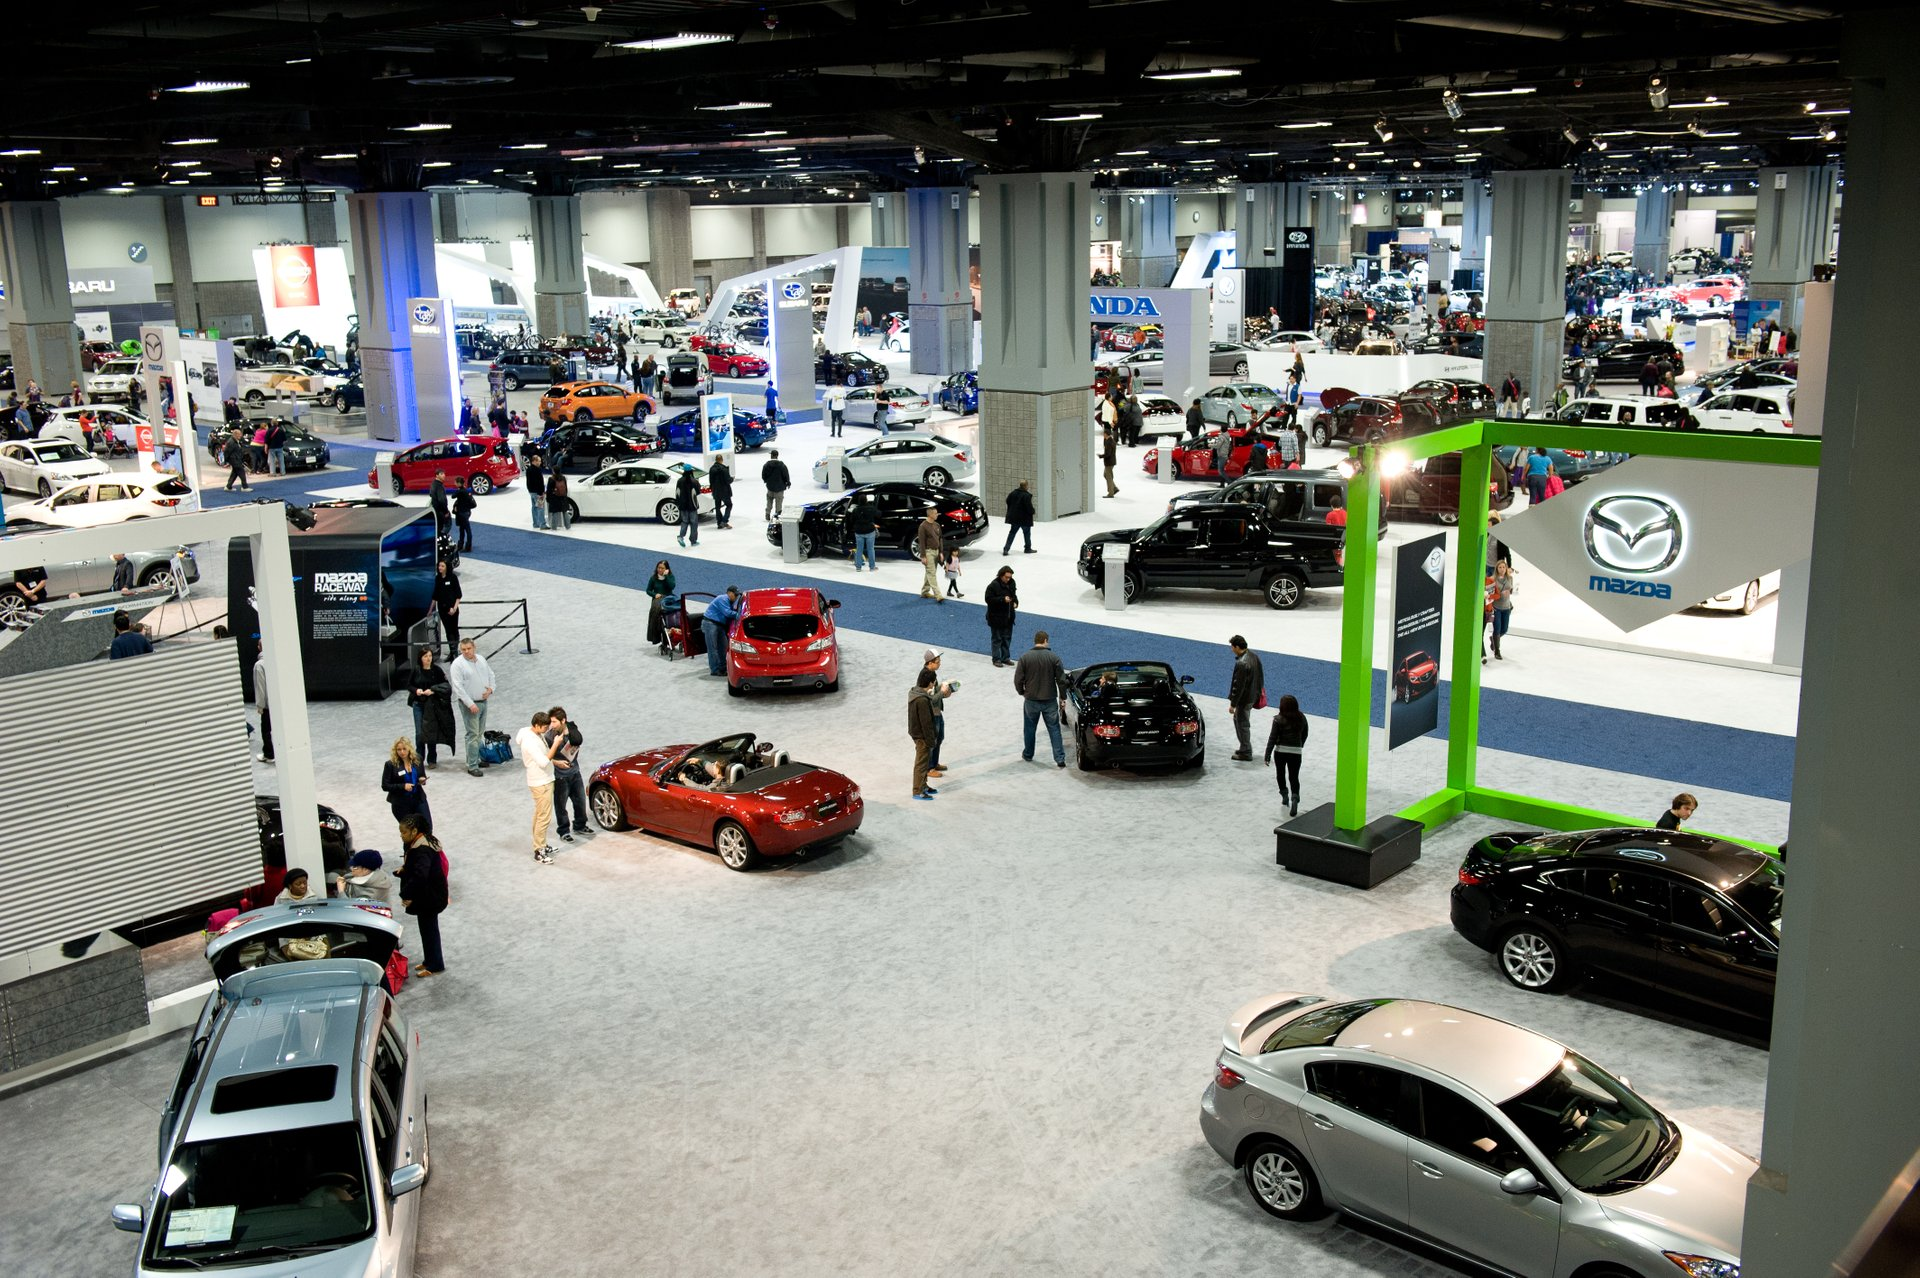 Washington Auto Show in Washington, D.C. - Best Season 2019